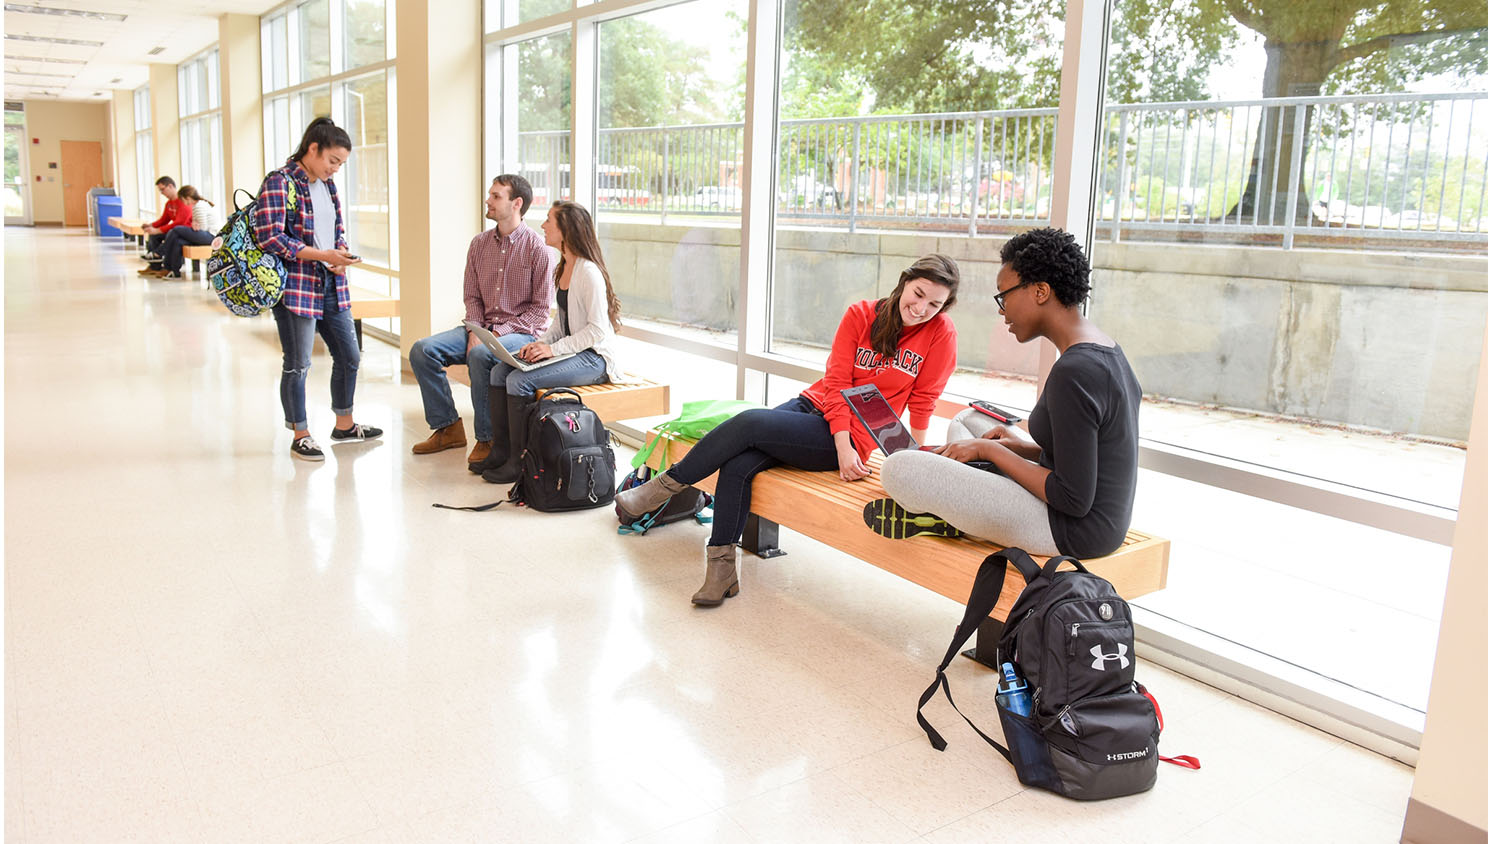 Students in Jordan Hall - Scholarships - College of Natural Resources at NCState University